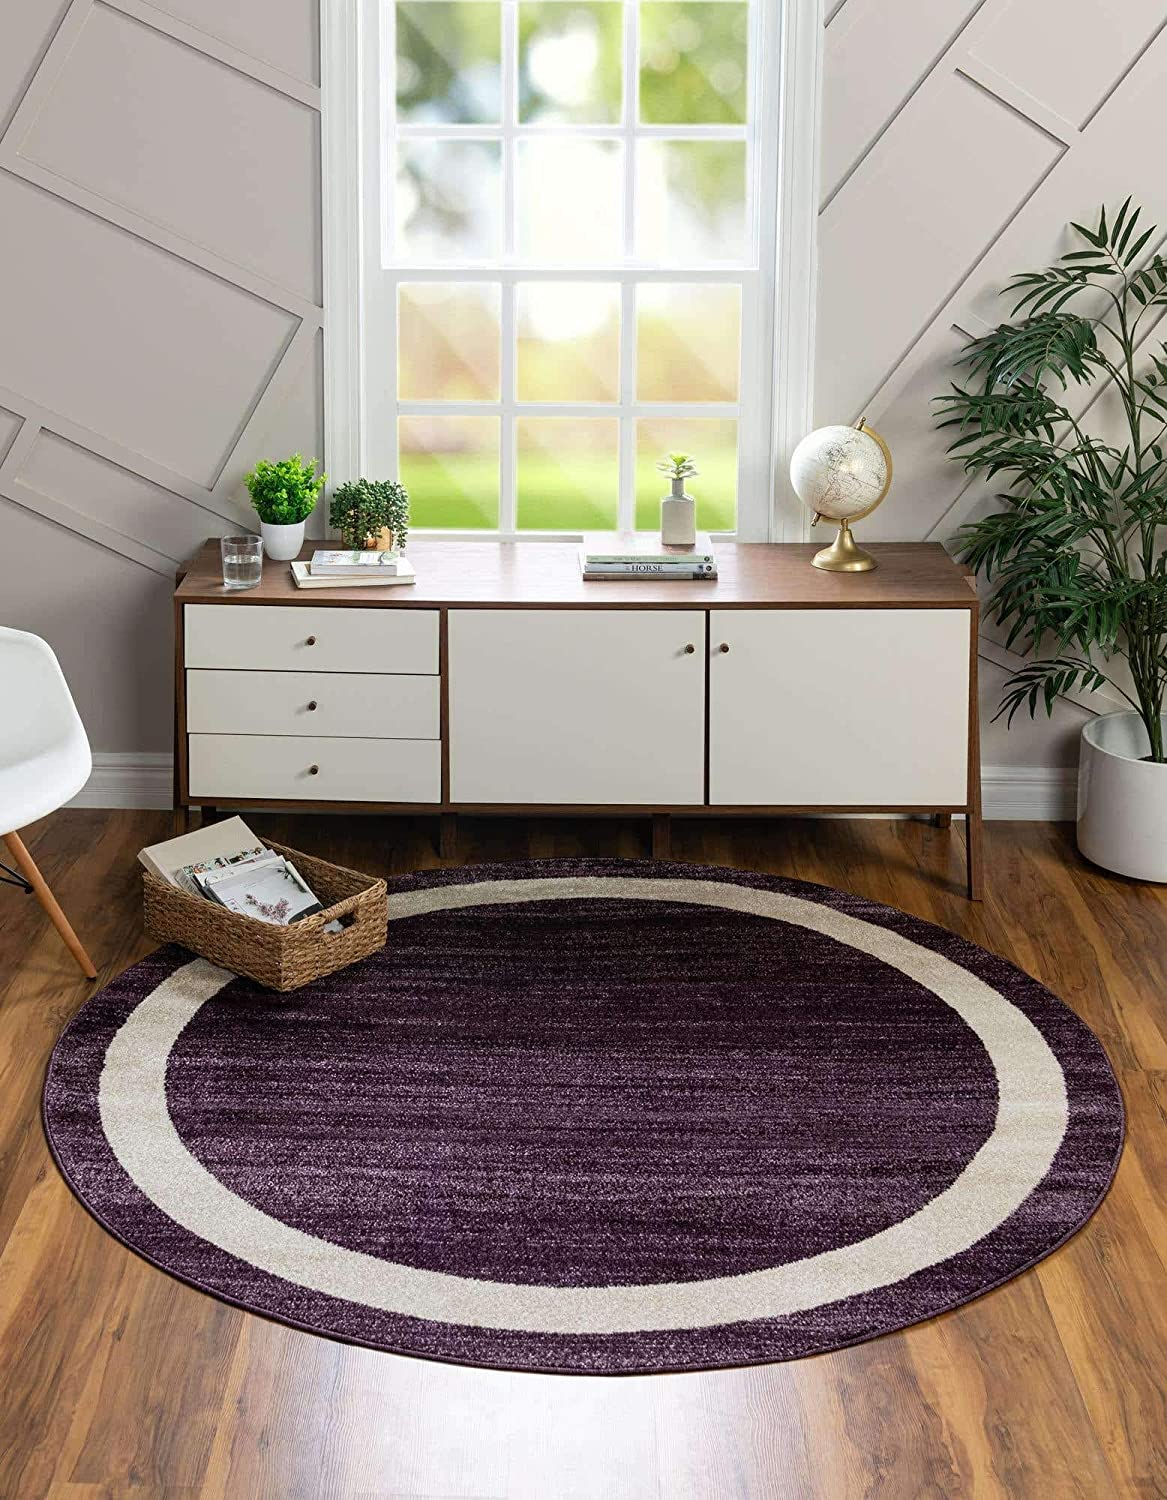 Unique Loom Del Mar Collection R Max 88% OFF Round Transitional Contemporary New arrival